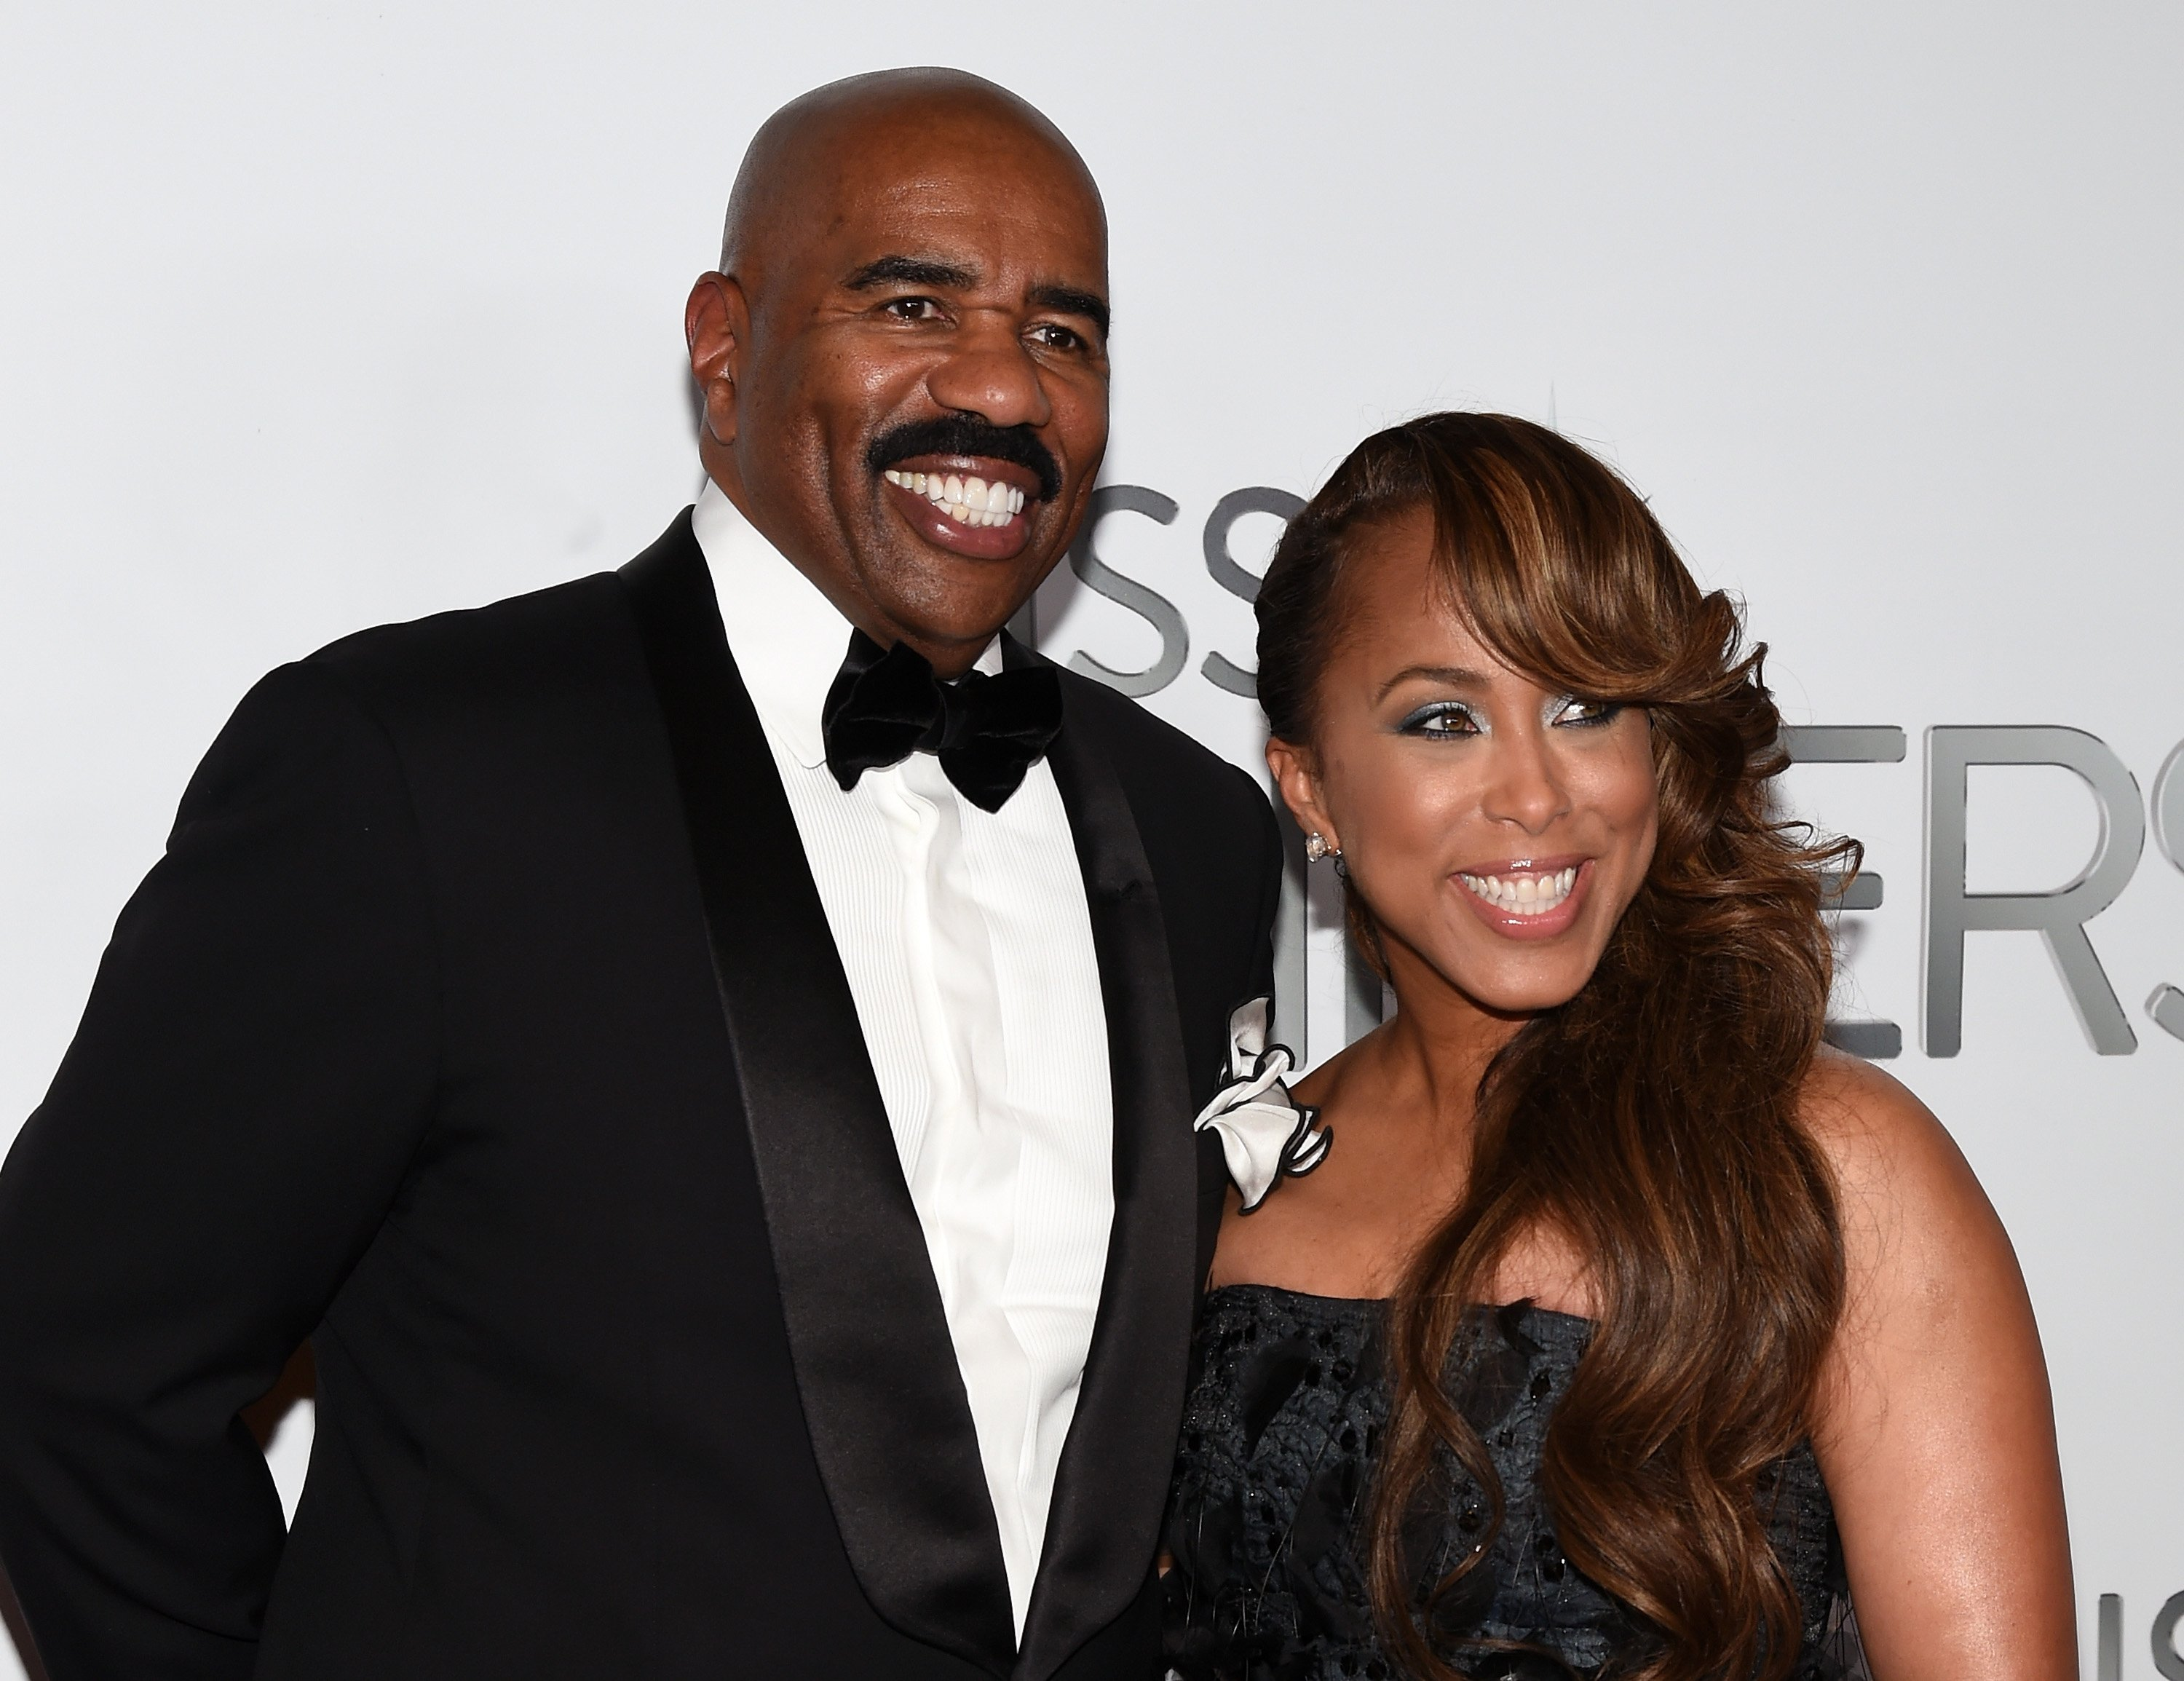 Steve Harvey and Marjorie Harvey at the 2015 Miss Universe Pageant at Planet Hollywood Resort & Casino on December 20, 2015 in Las Vegas, Nevada.| Source: Getty Images